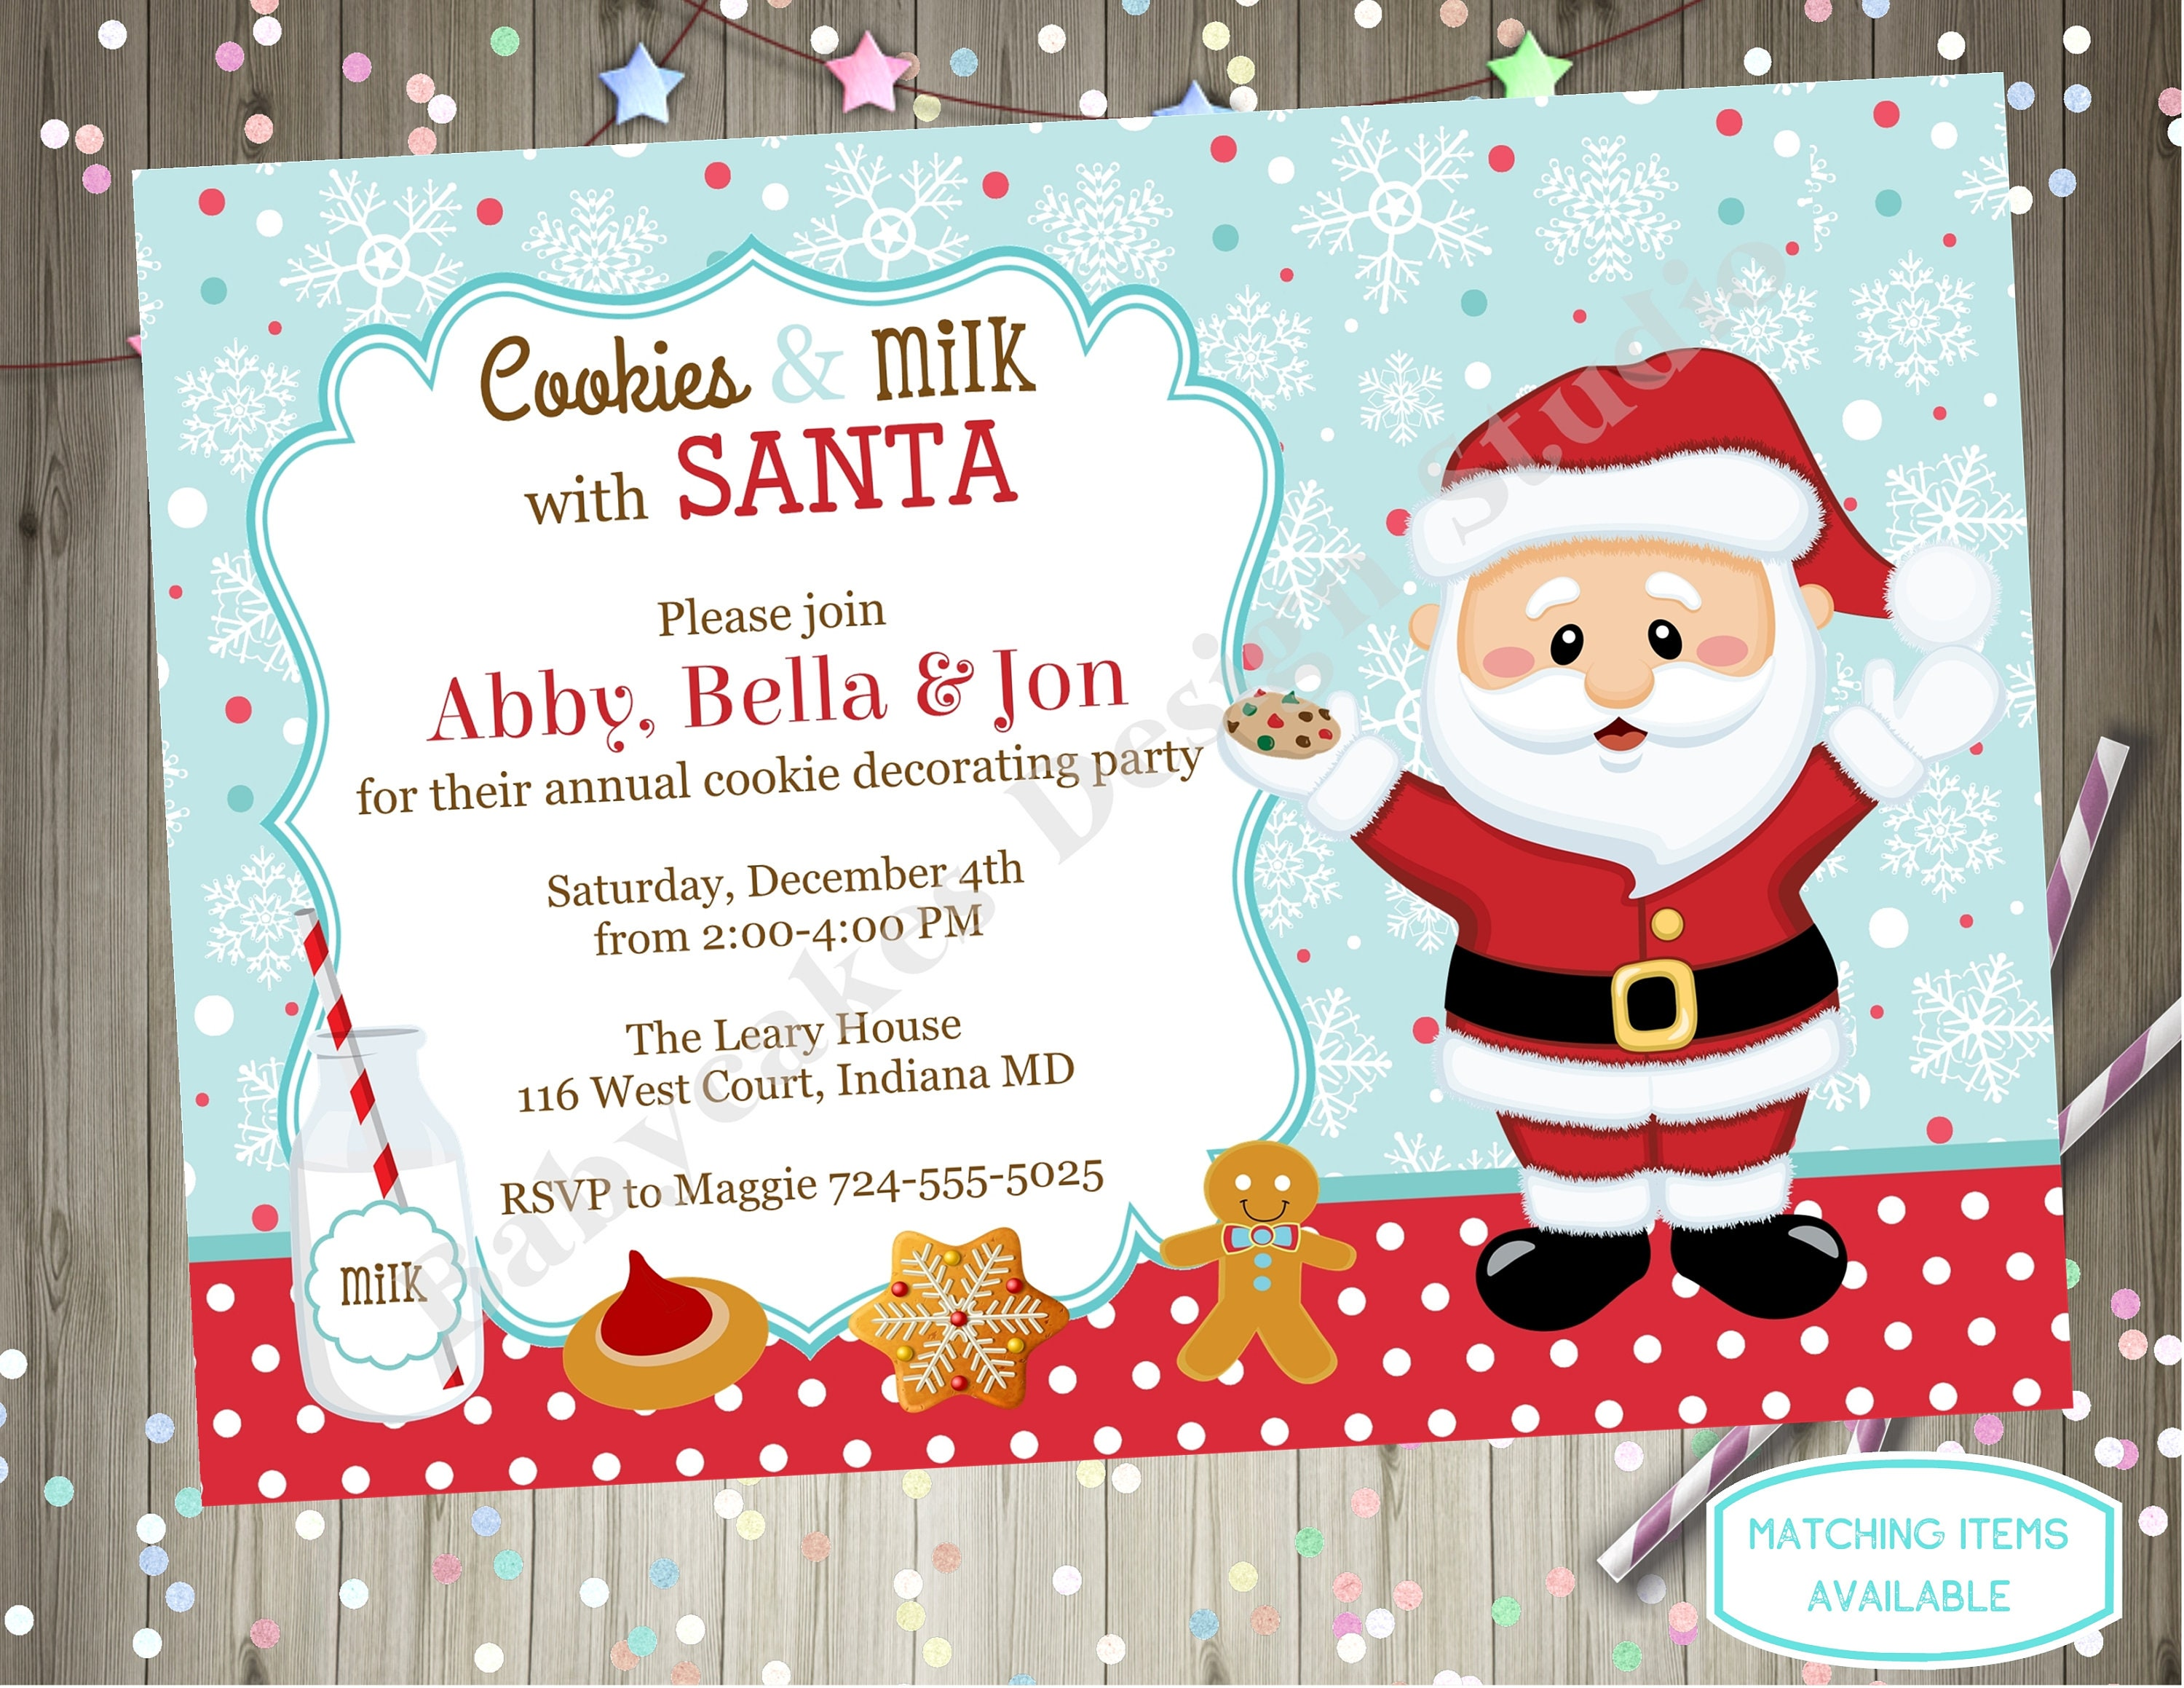 Milk And Cookies With Santa Invitation Invite Cookie Decorating Party